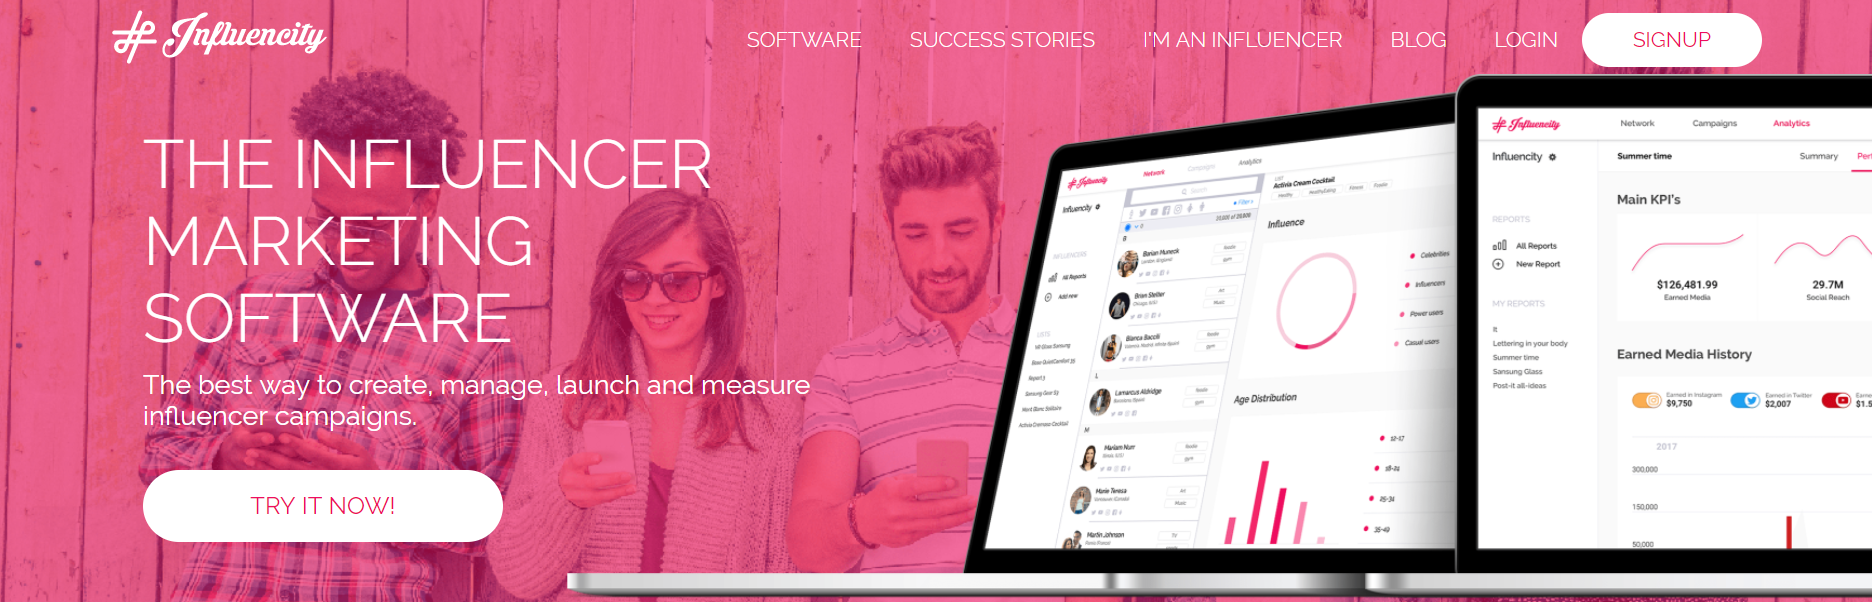 Influencity - The Influencer Marketing Software